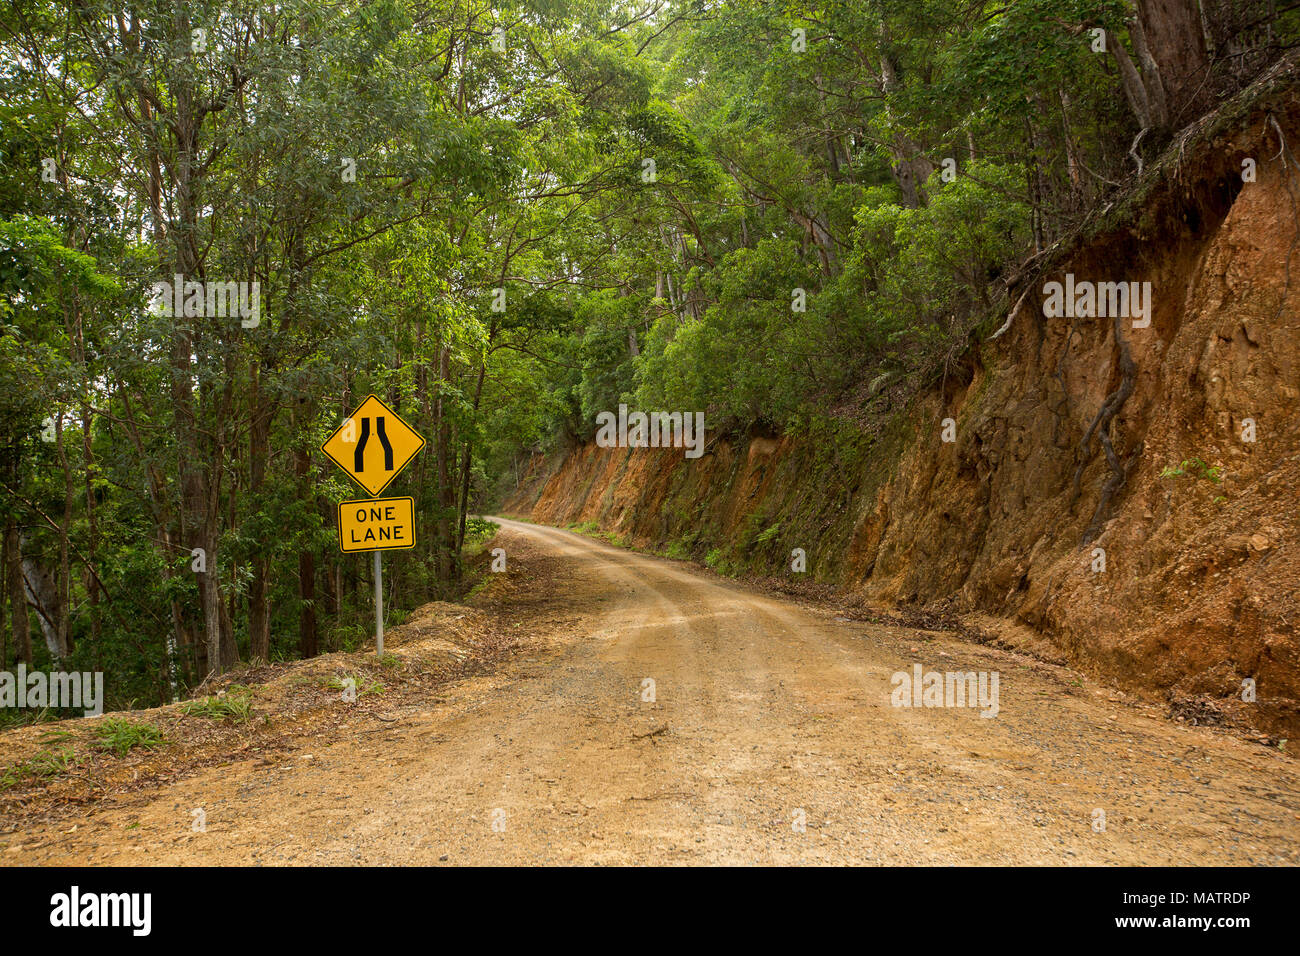 Narrow dirt road winding through forested landscape of Conondale Ranges National Park in Queensland Australia Stock Photo